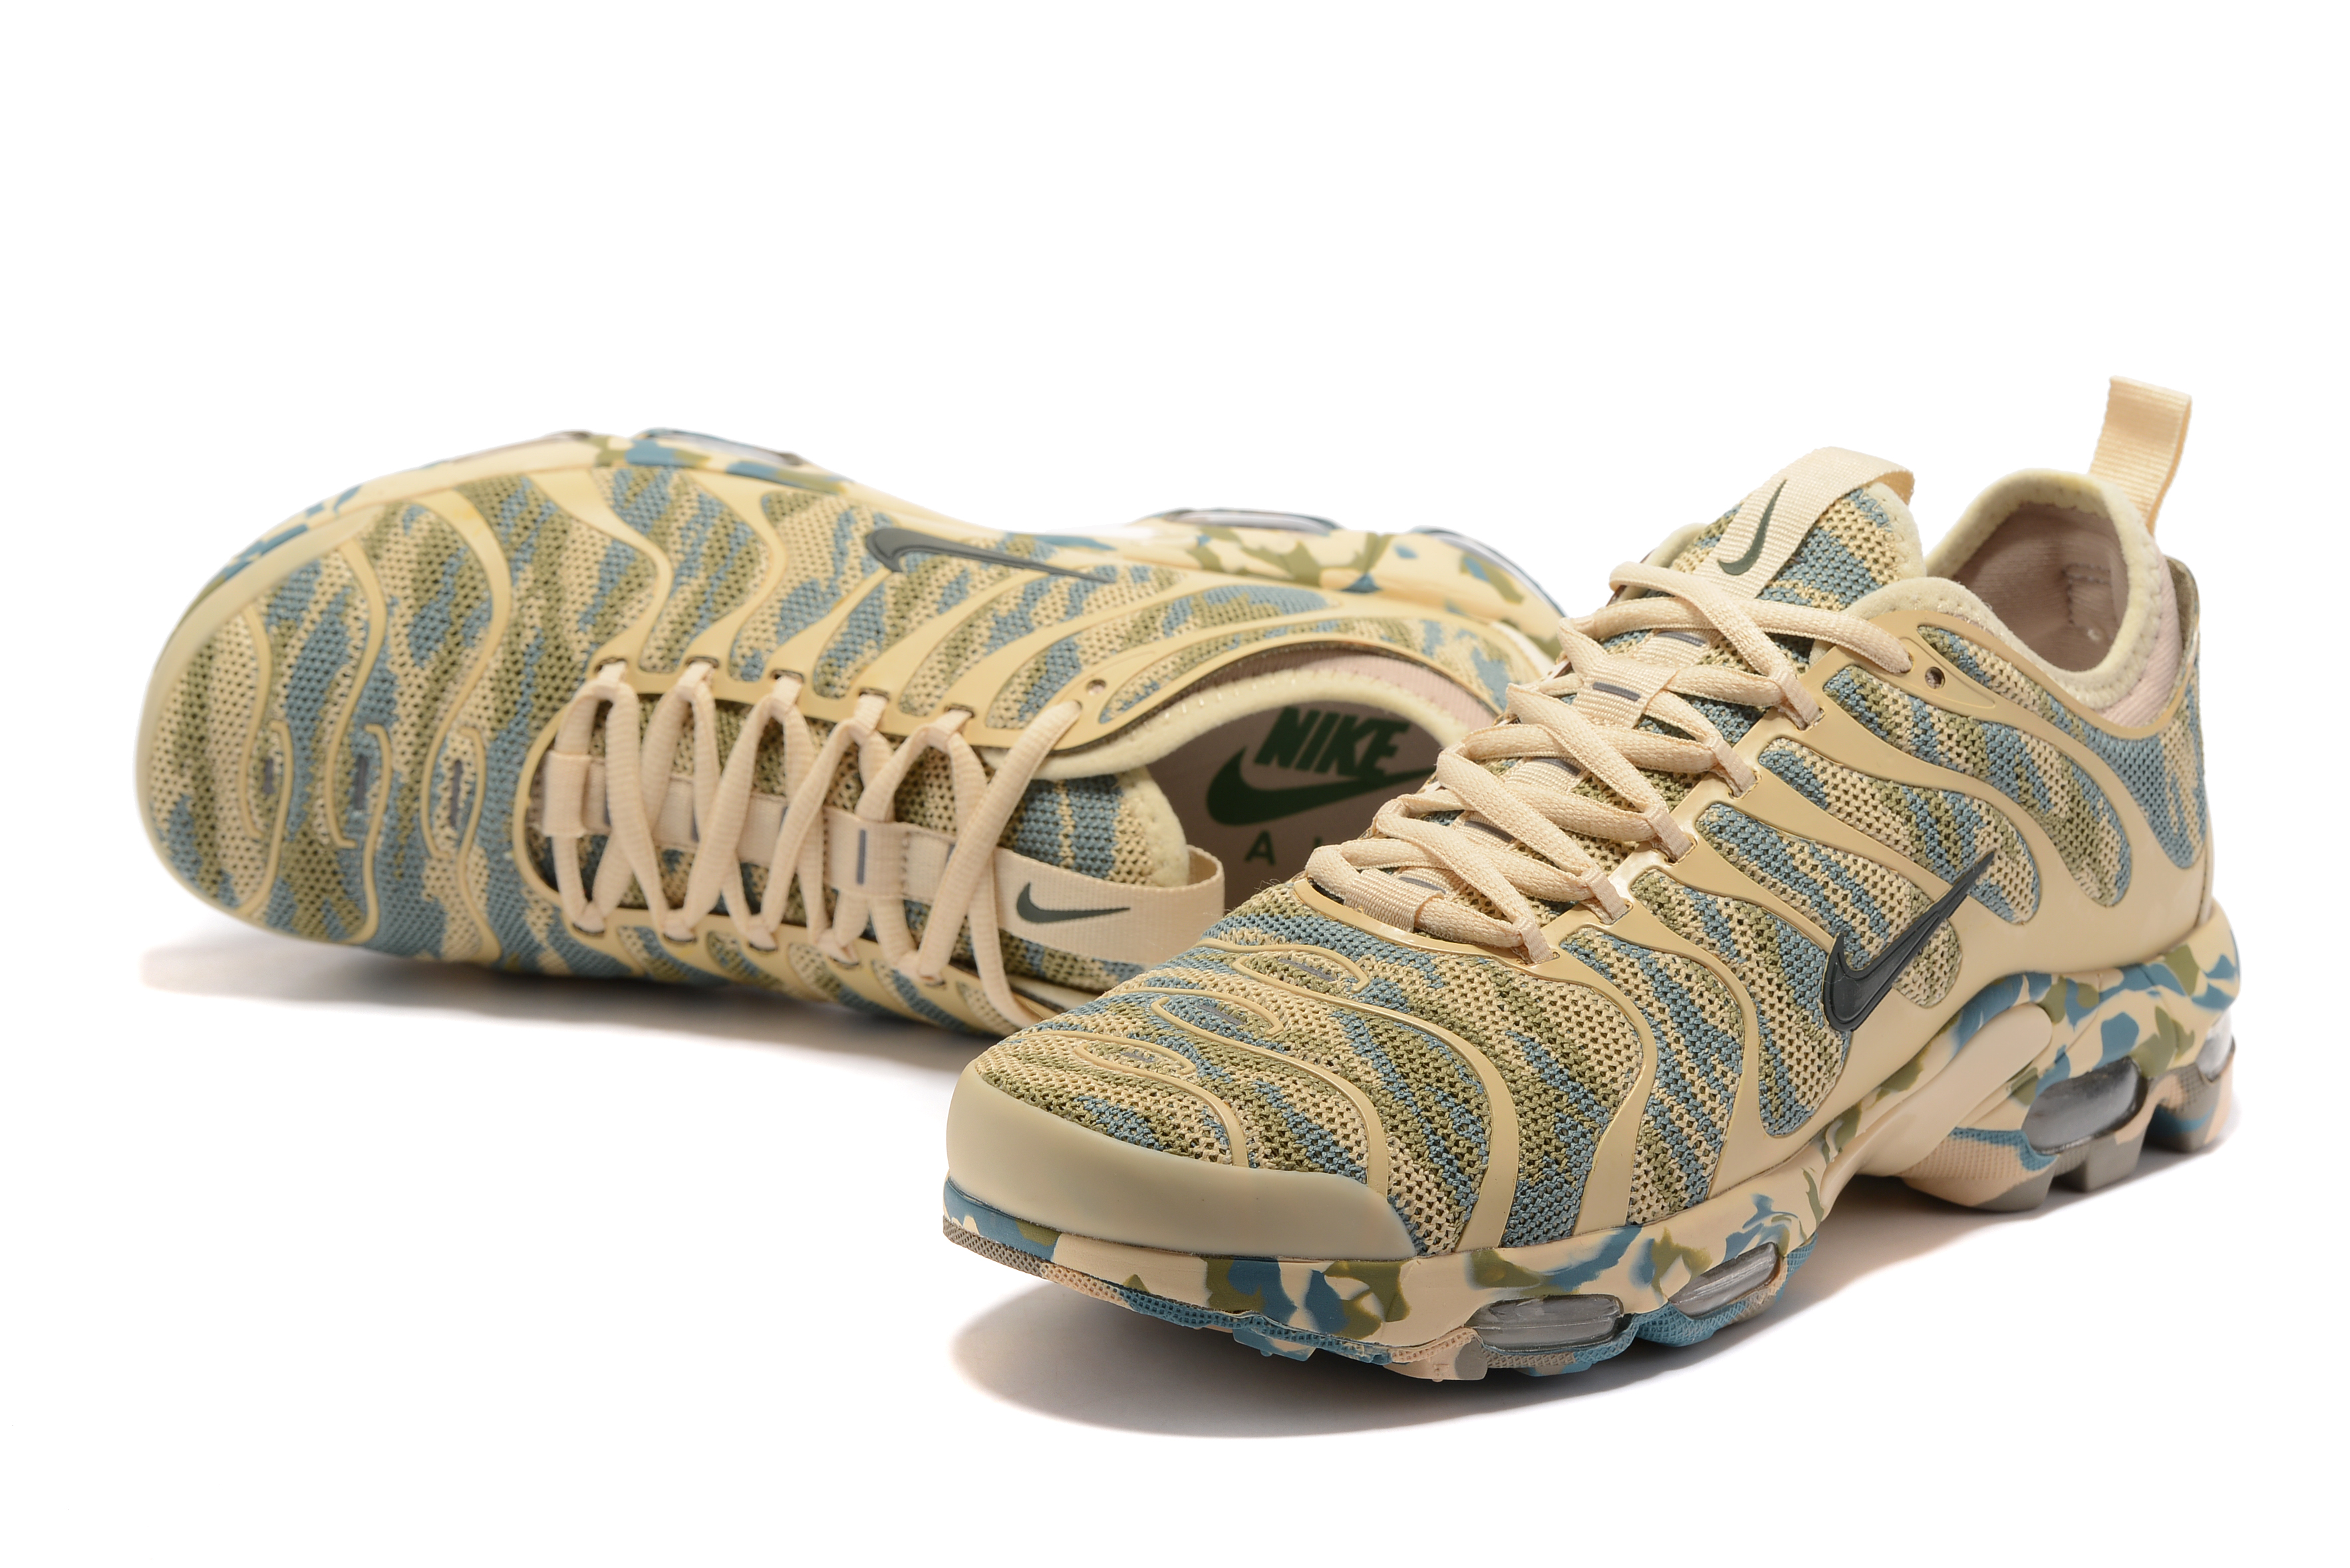 Nike Air Max Plus TN Camo Yellow Green Shoes